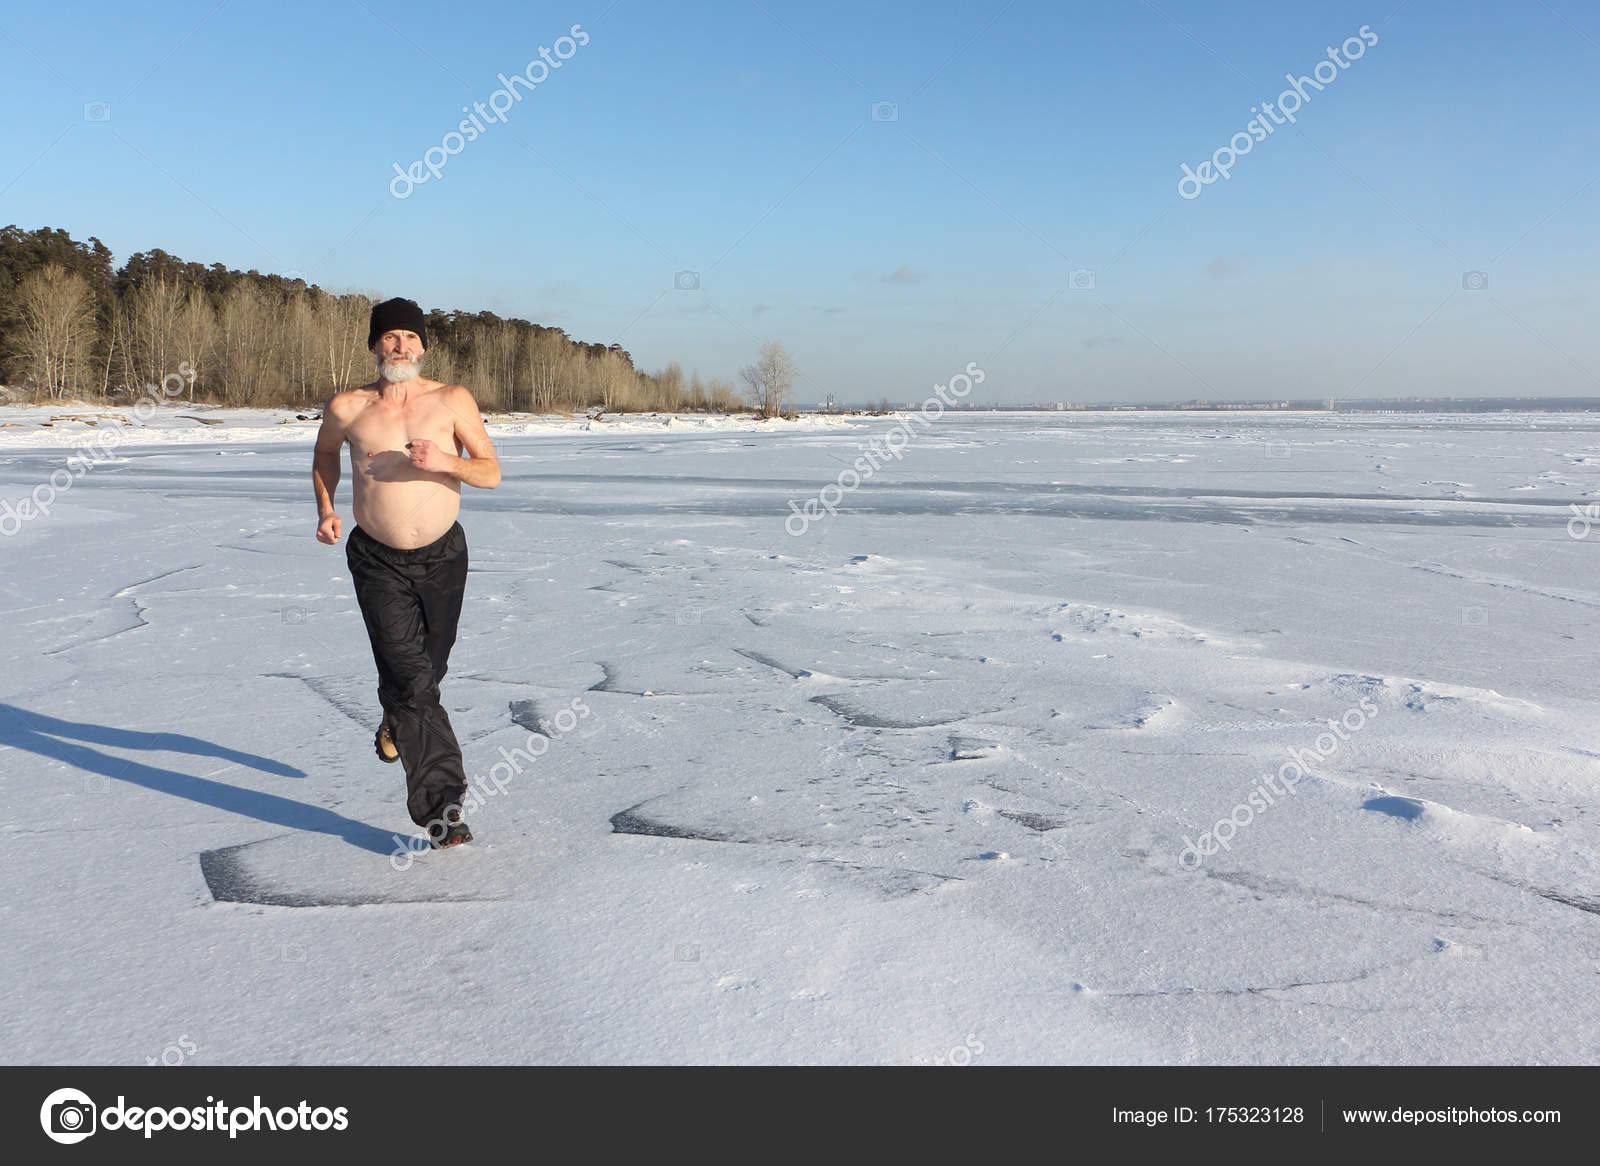 Right! seems running in the snow naked have hit